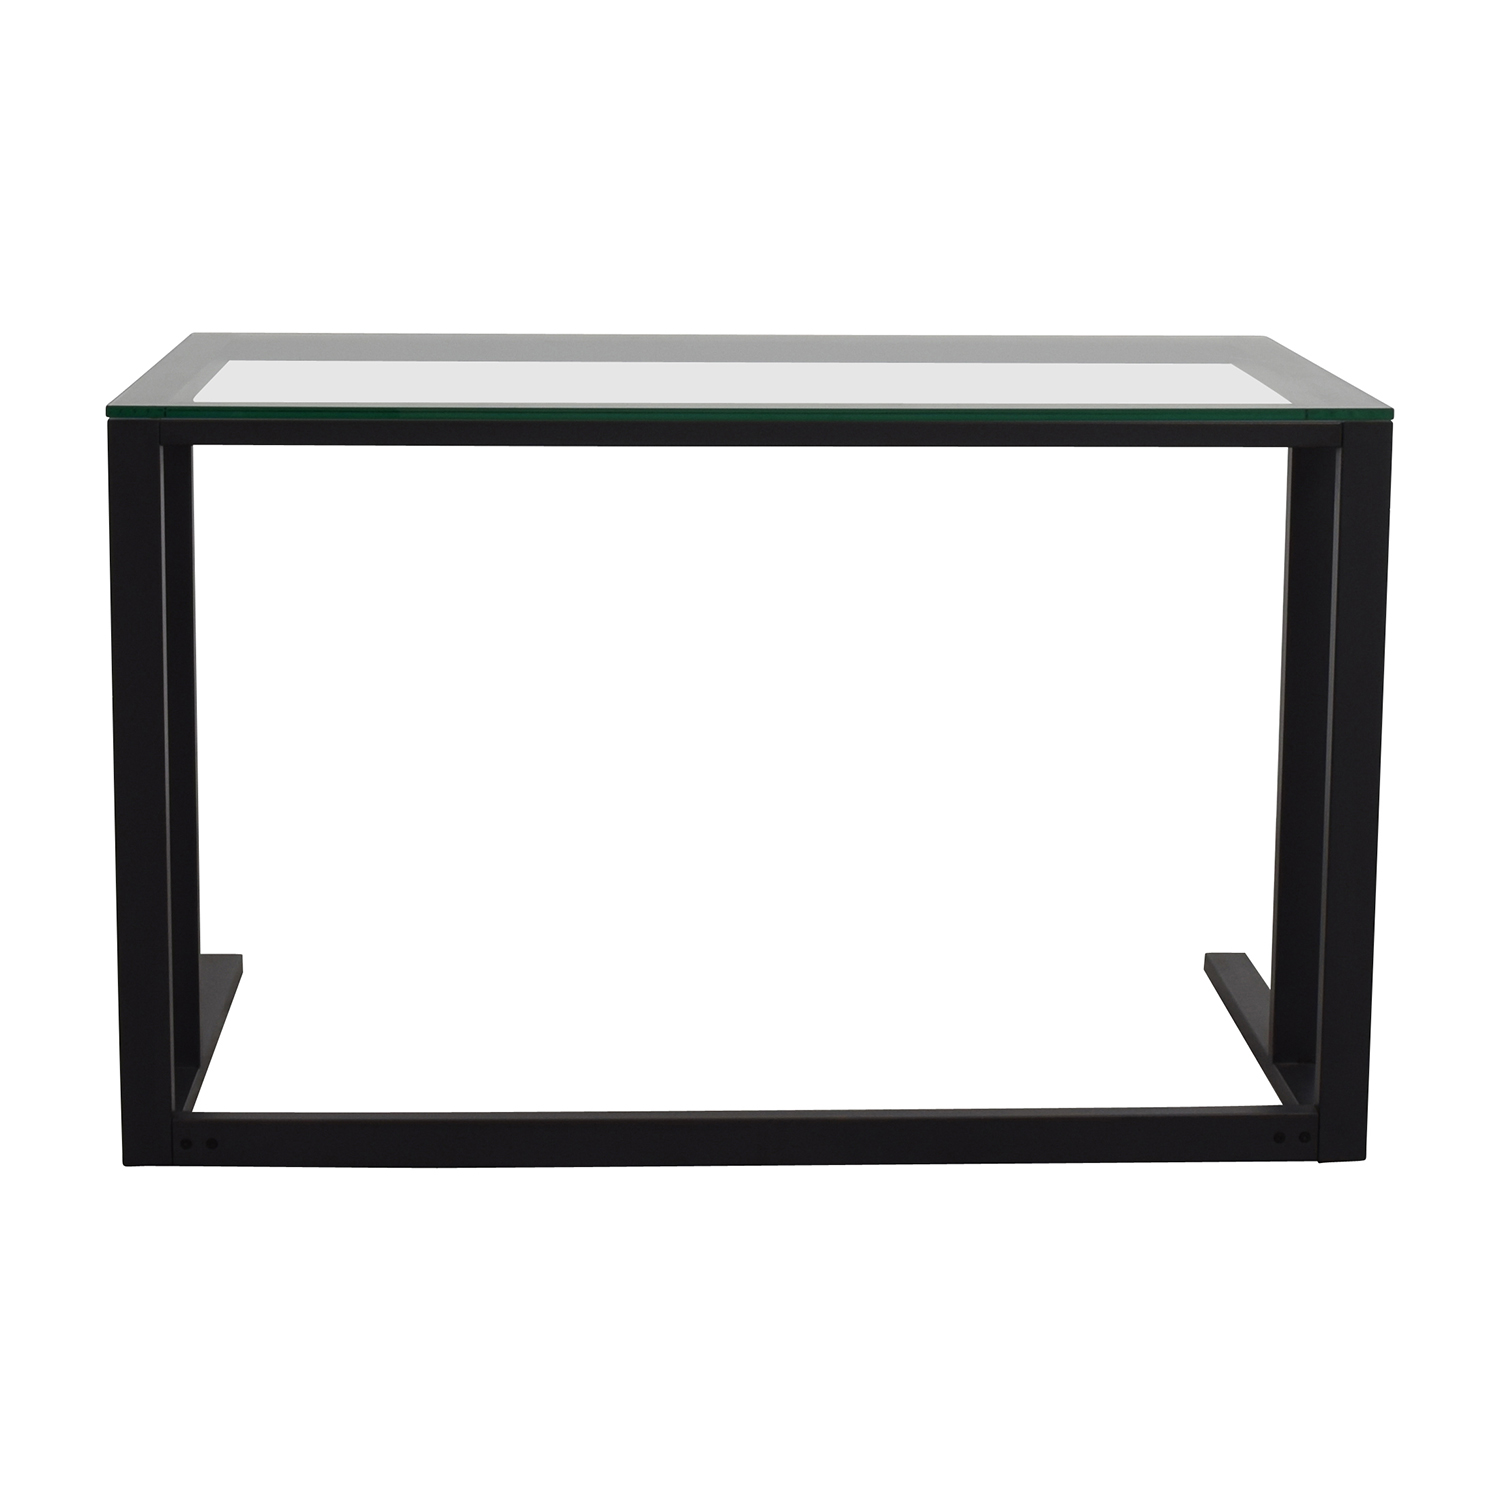 shop Crate and Barrel Crate & Barrel Glass Desk online